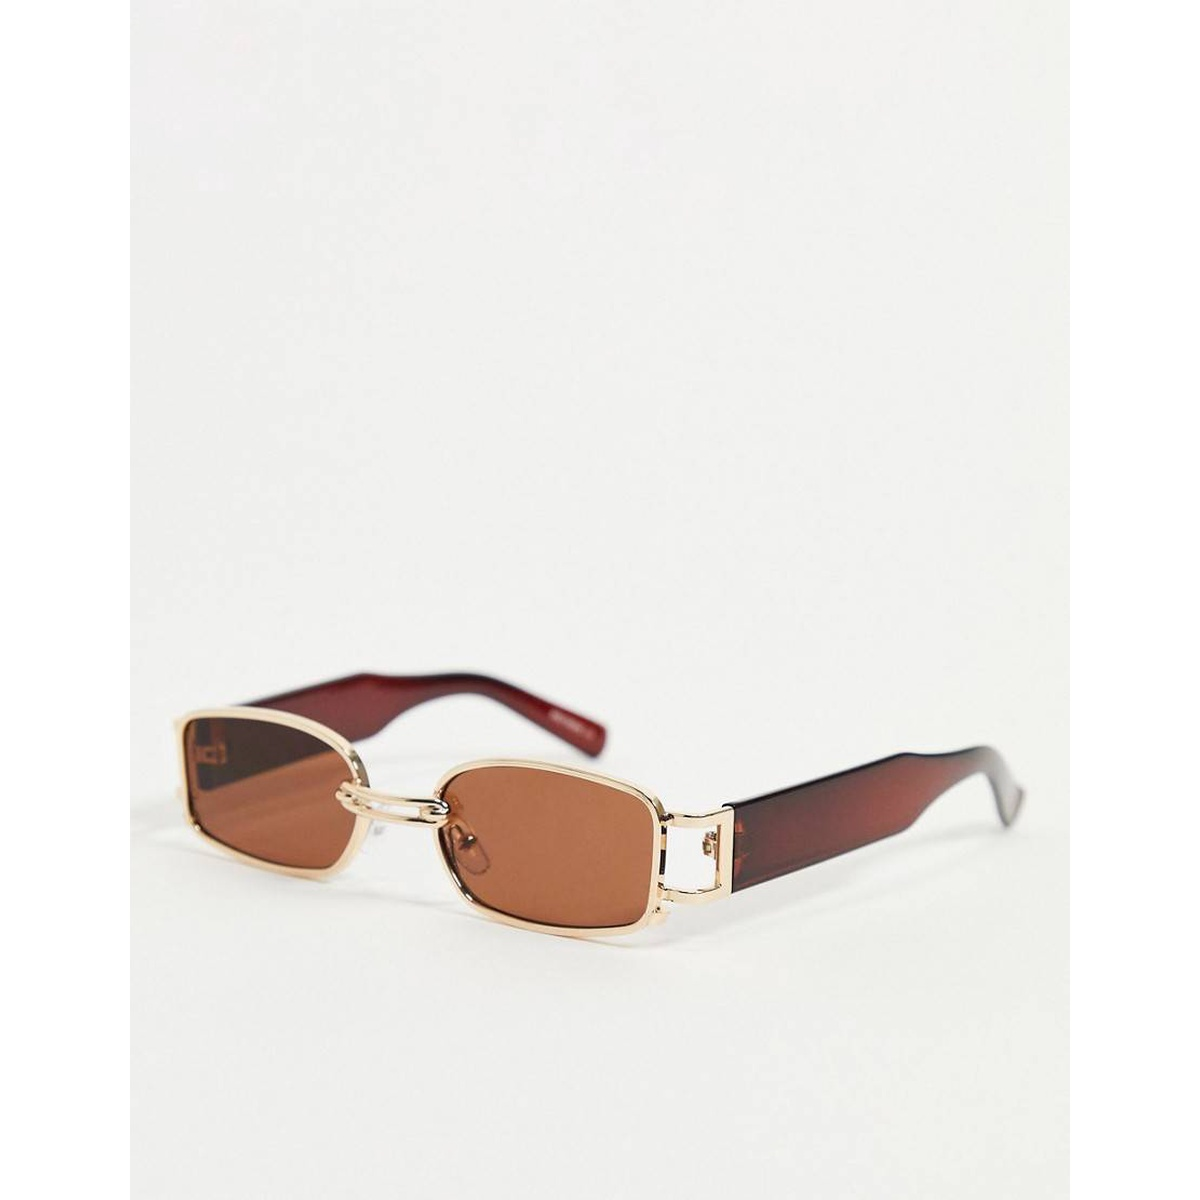 My accessories London Square lenses Brown Sunglasses Gold luxury goods